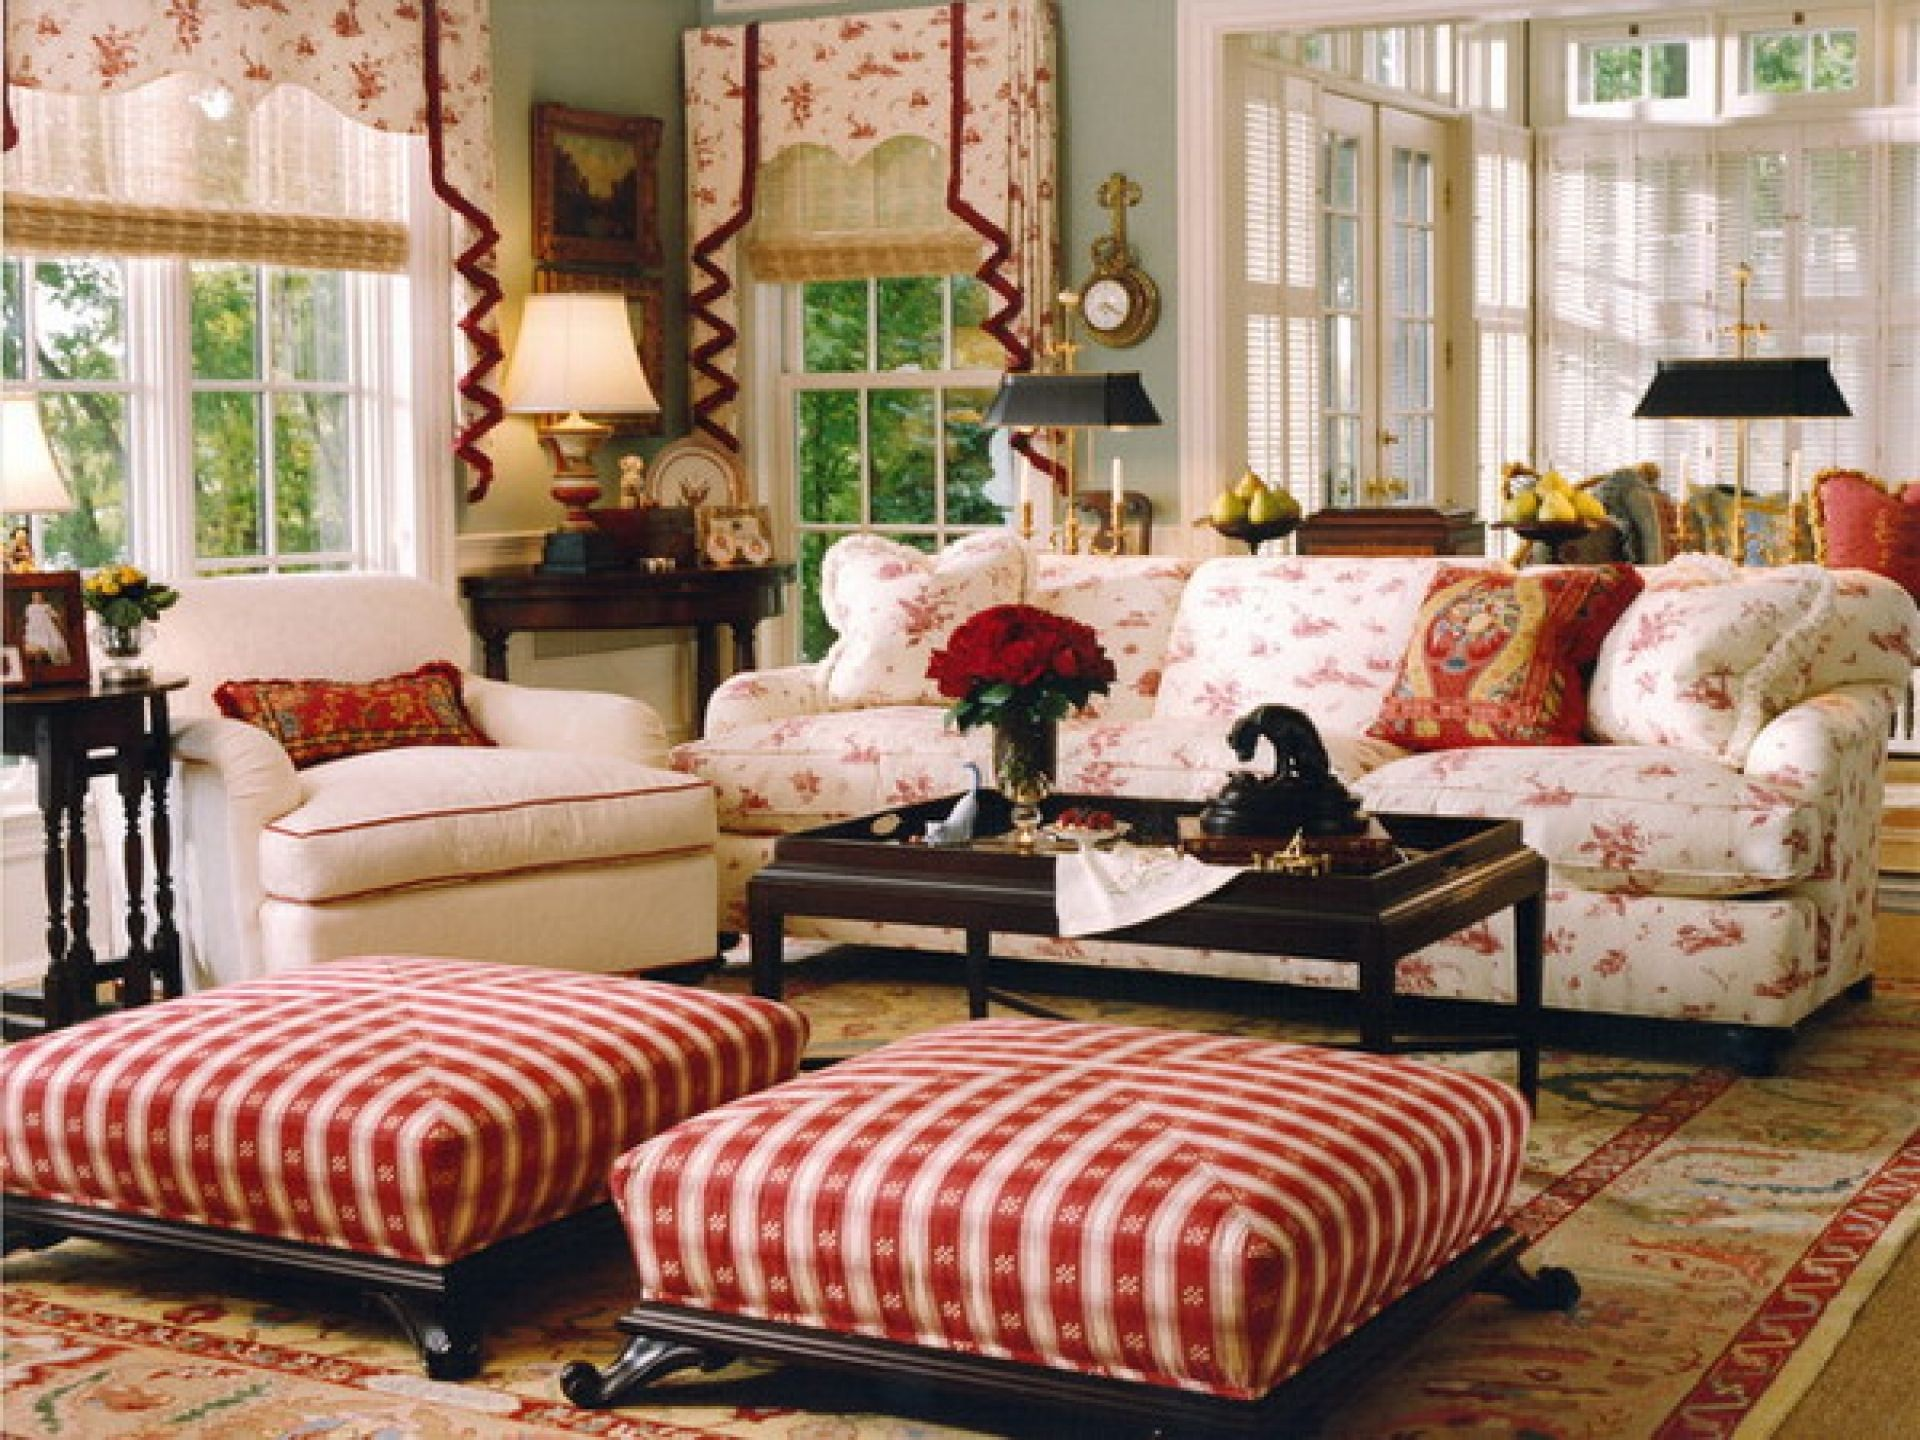 Attractive English Country Living Room Ideas Square Red Striped Fabric  Ottoman White Floral Fabric Windows Valance